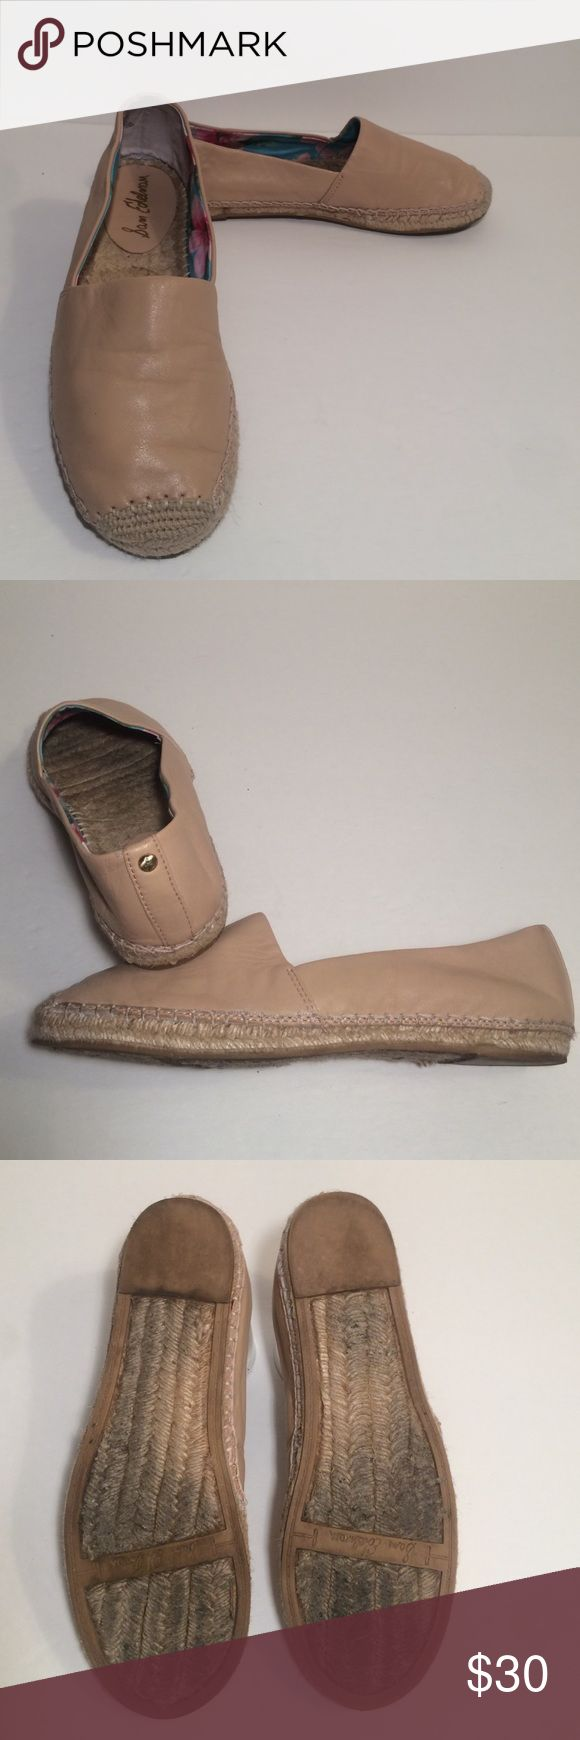 Sam Edelman Espadrille Shoes These slip-on Sam Edelman 'Lynn' Slide on shoes feature a leather upper and espadrille sole. They are in great condition and were only worn a couple of times. These are a size 8.5 Sam Edelman Shoes Espadrilles